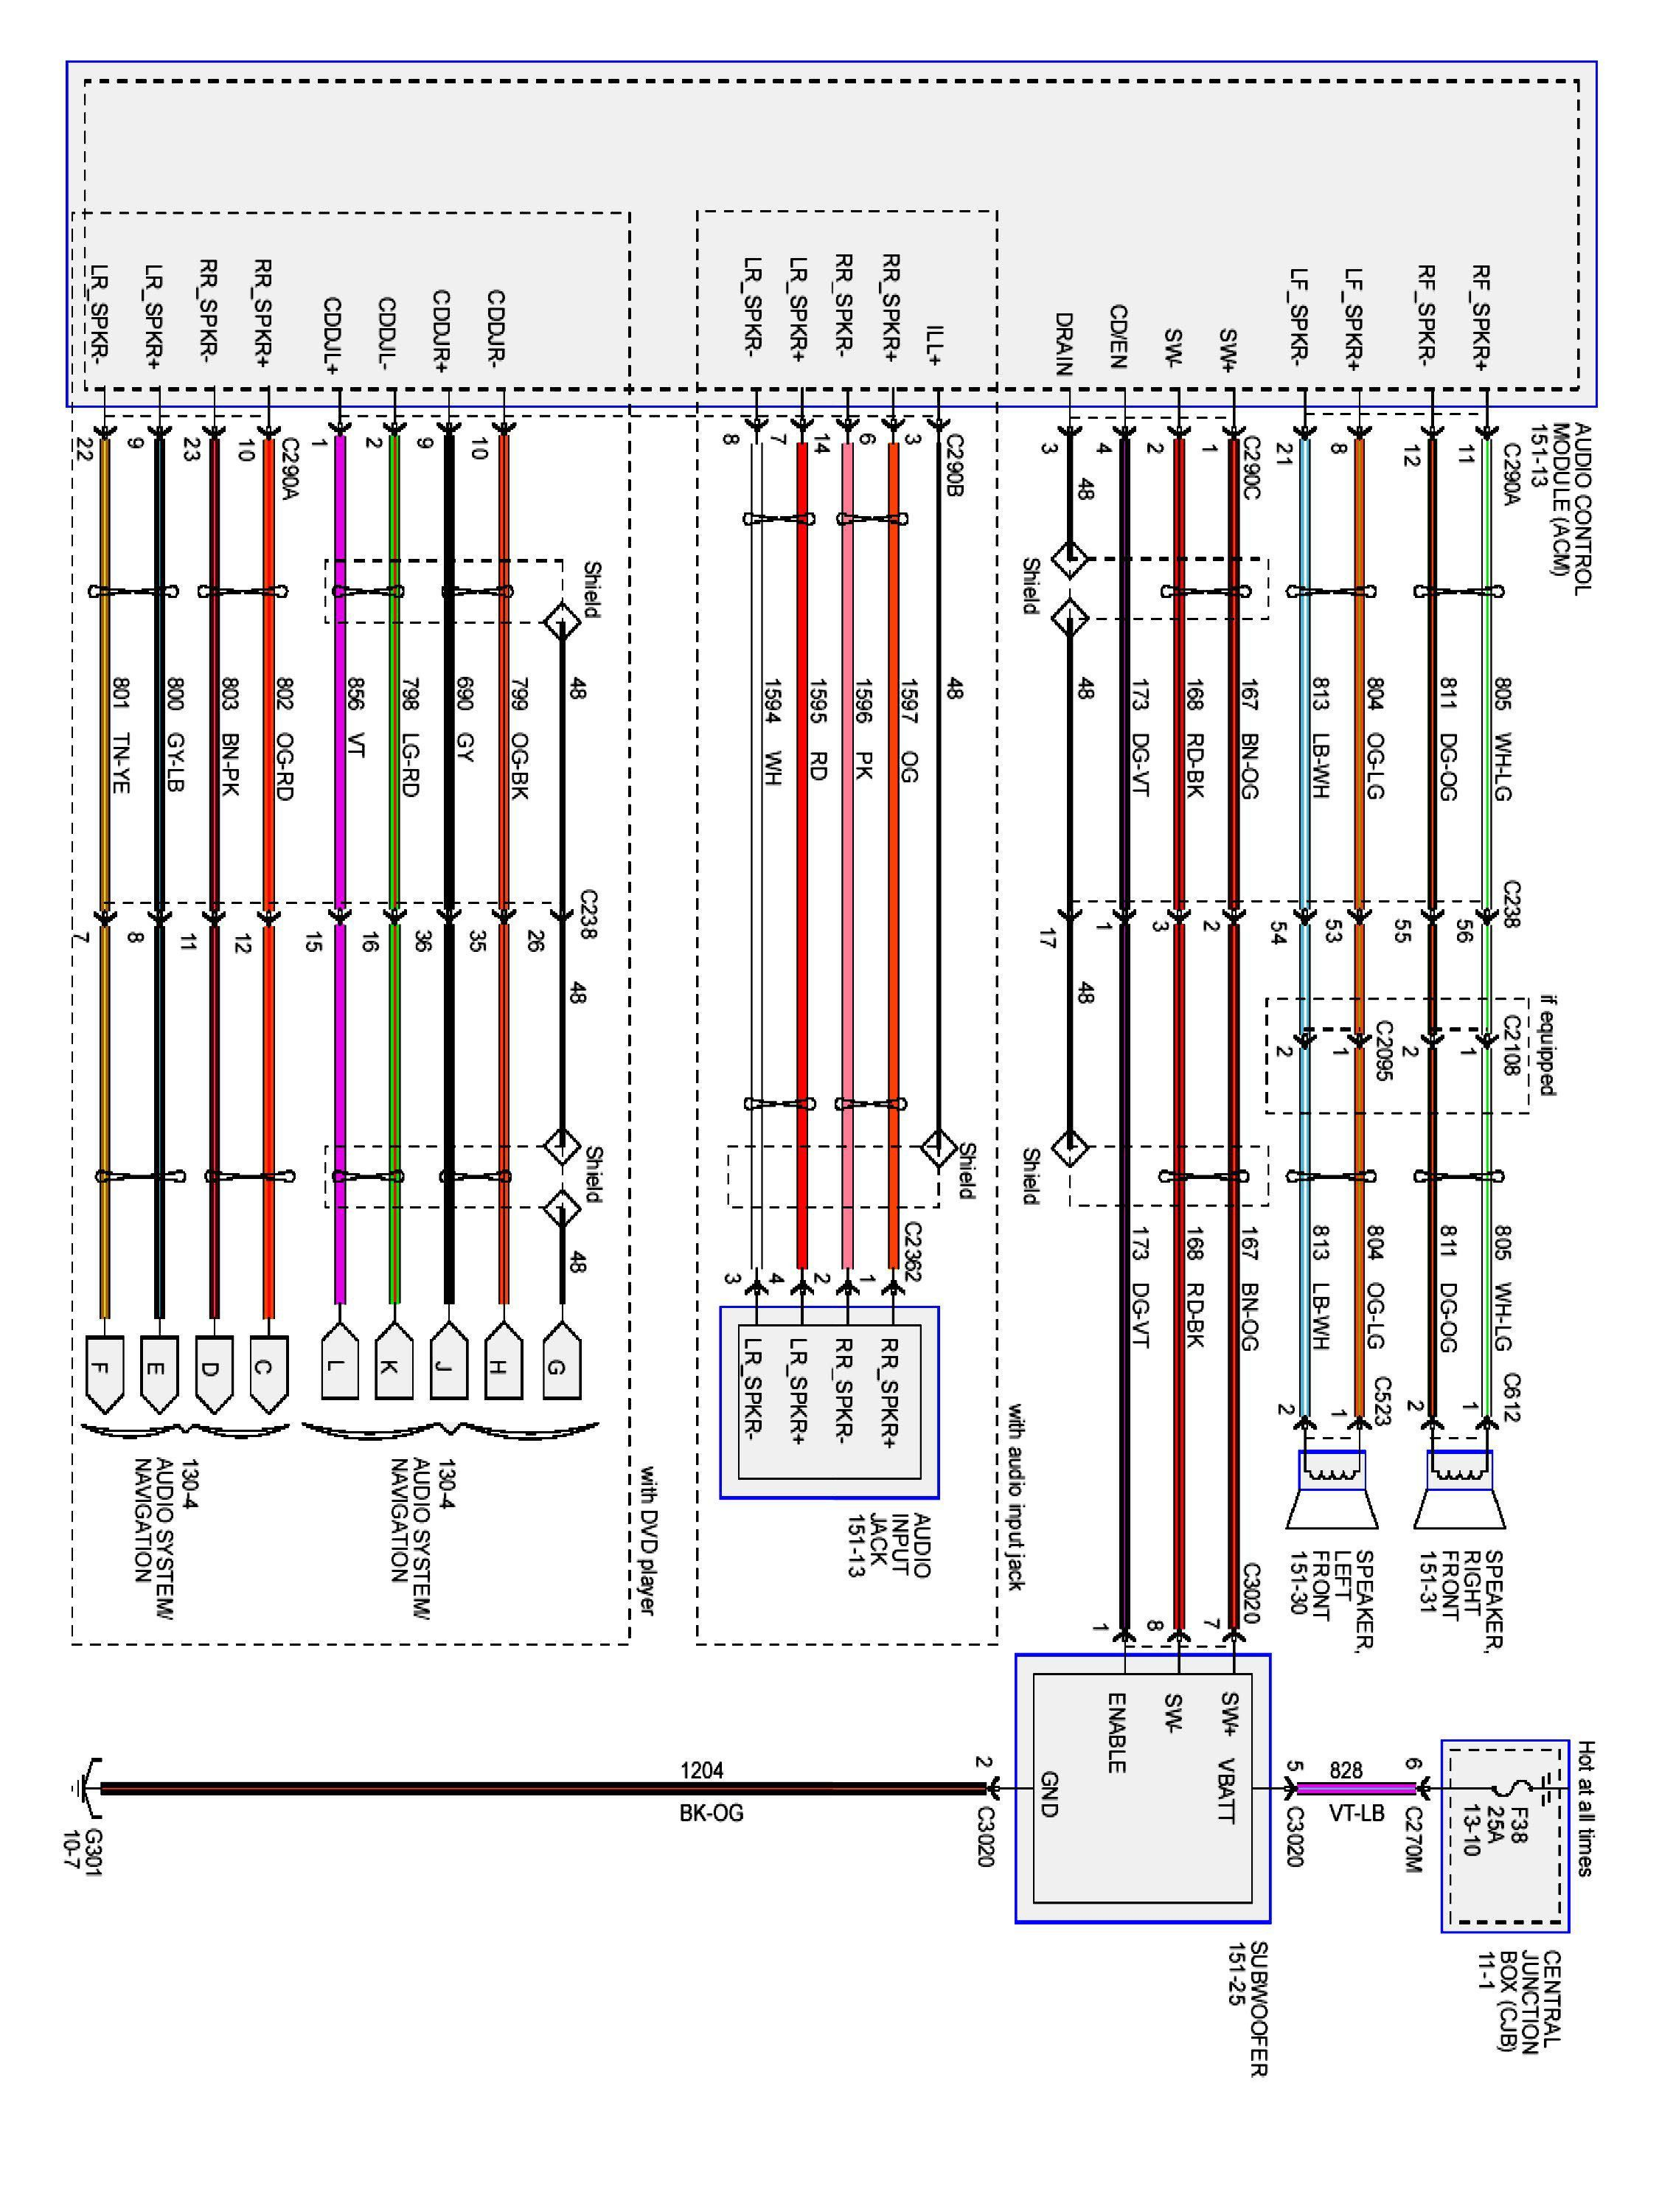 2012 Ford Wiring Diagram Ford Expedition 2004 Ford F150 Diagram